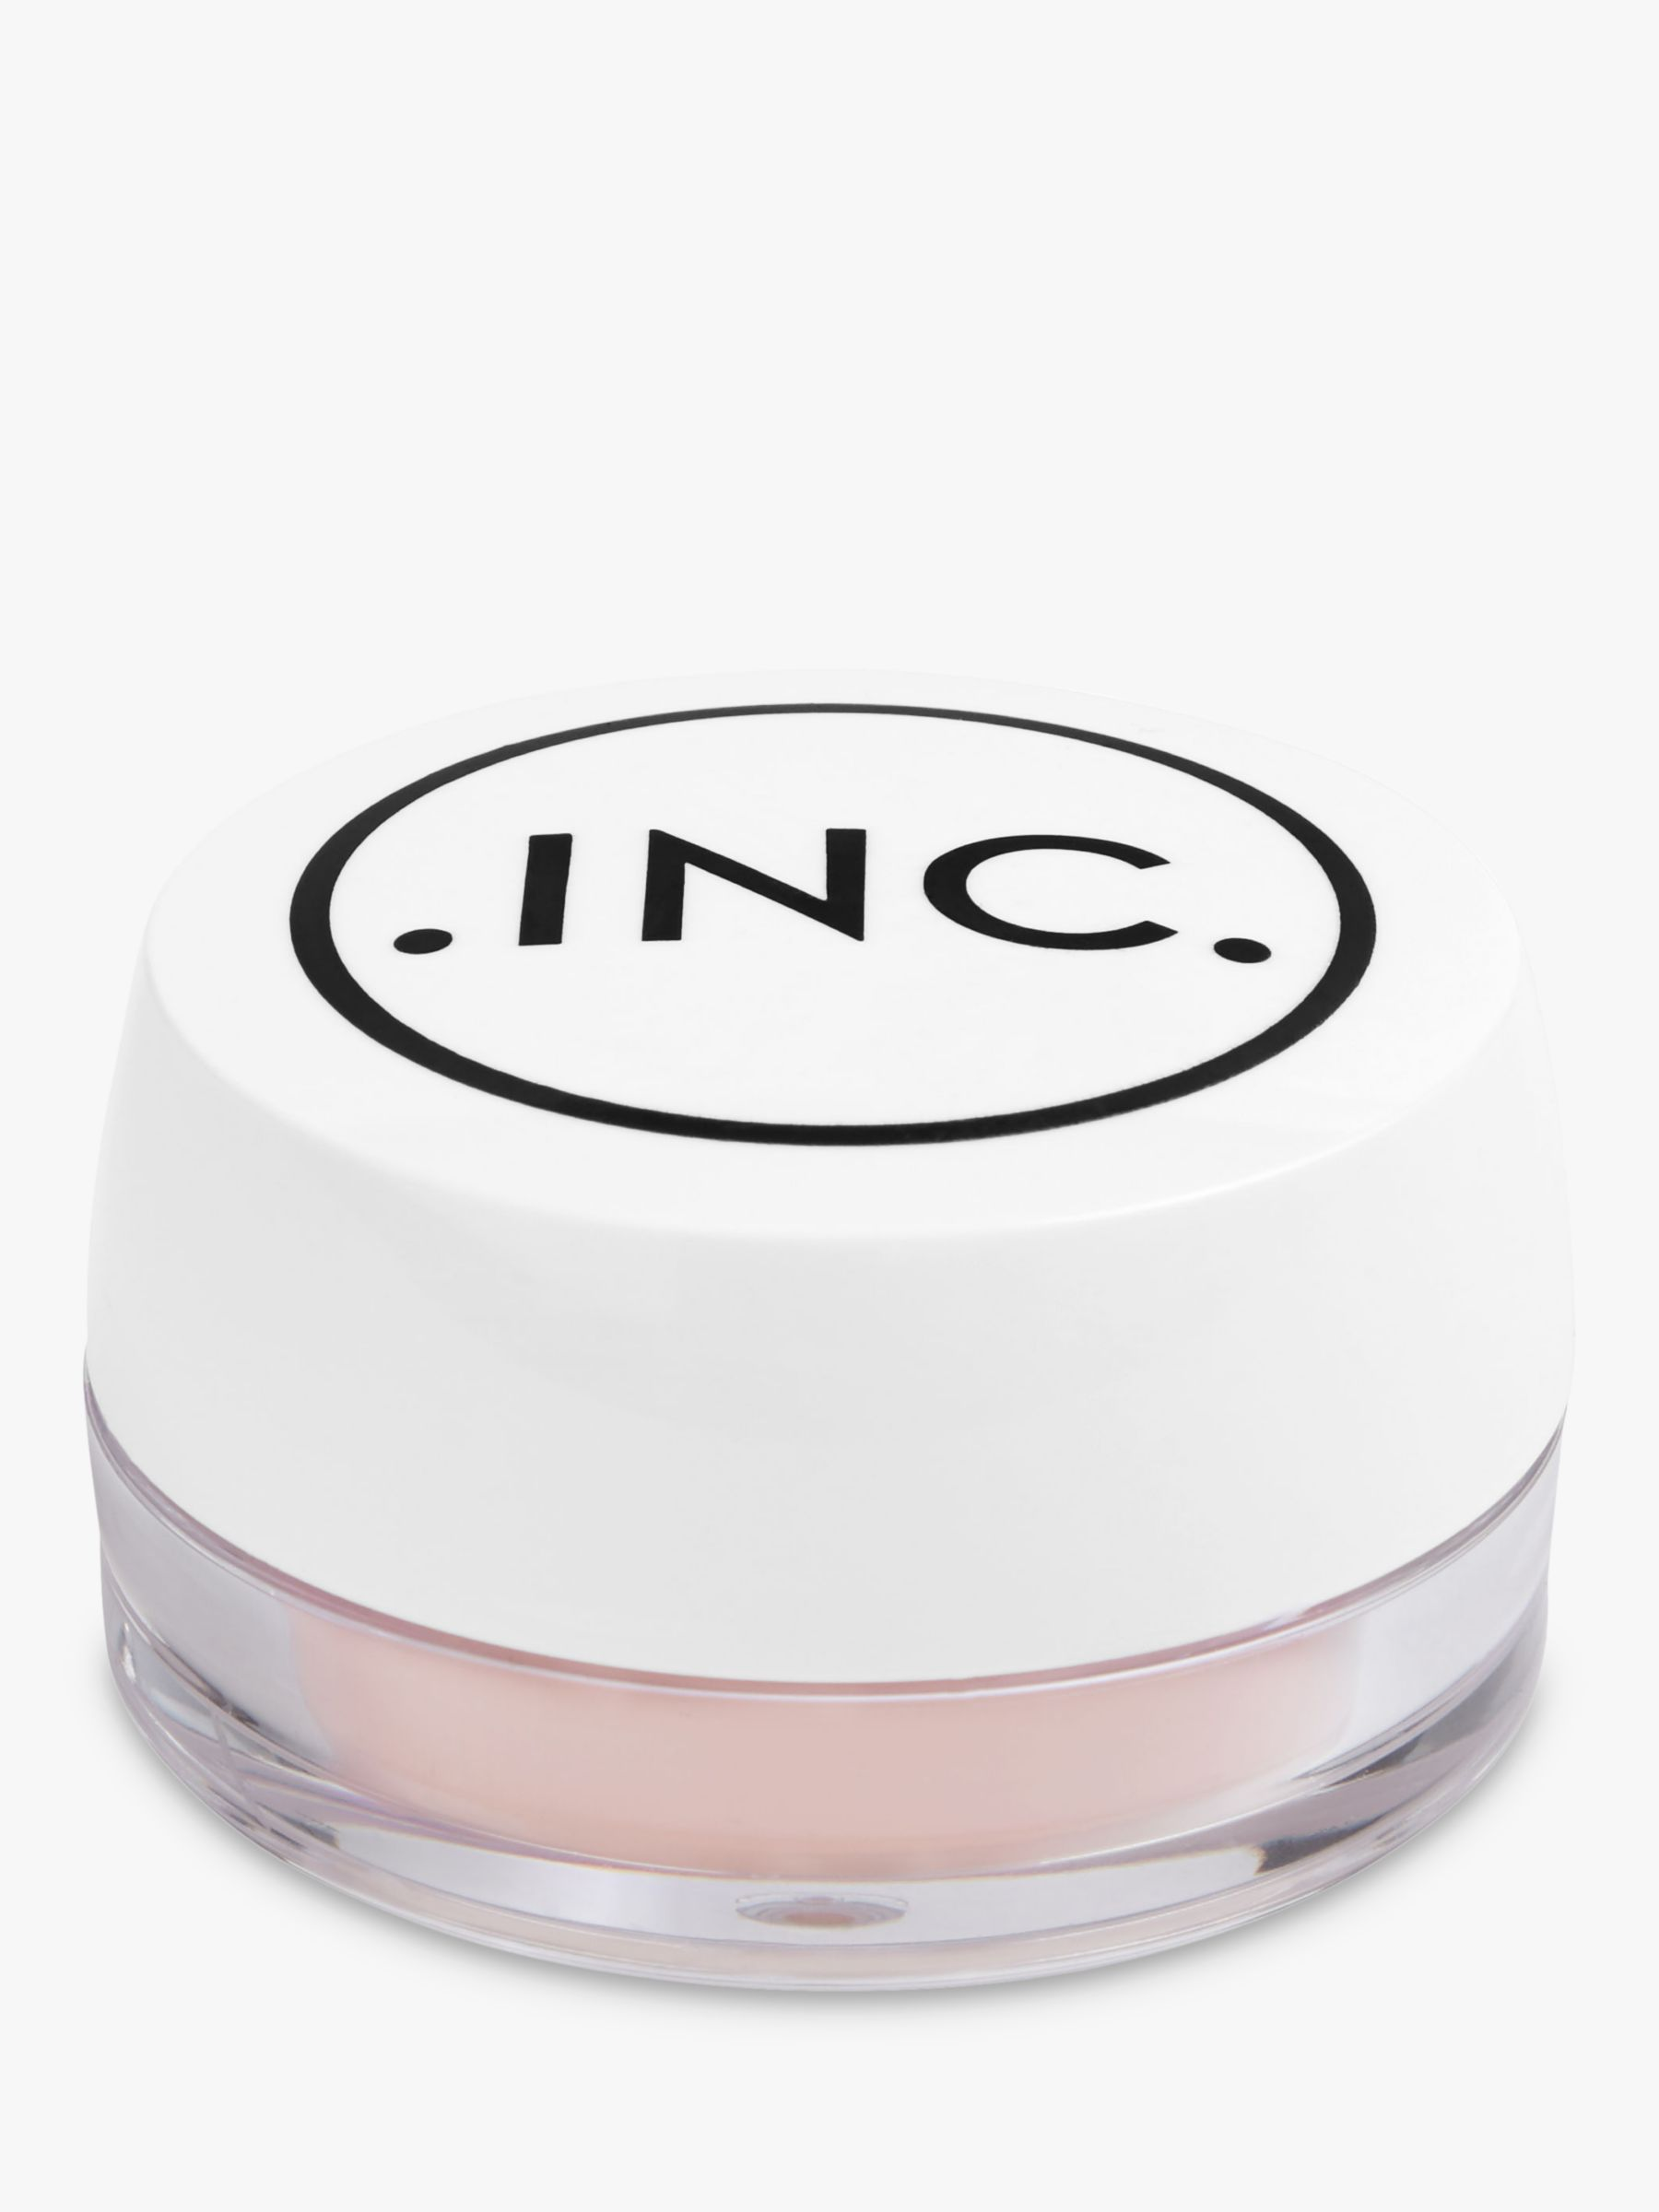 Nails Inc Nails Inc Inc.redible Salve The Day Lip Balm, 10g